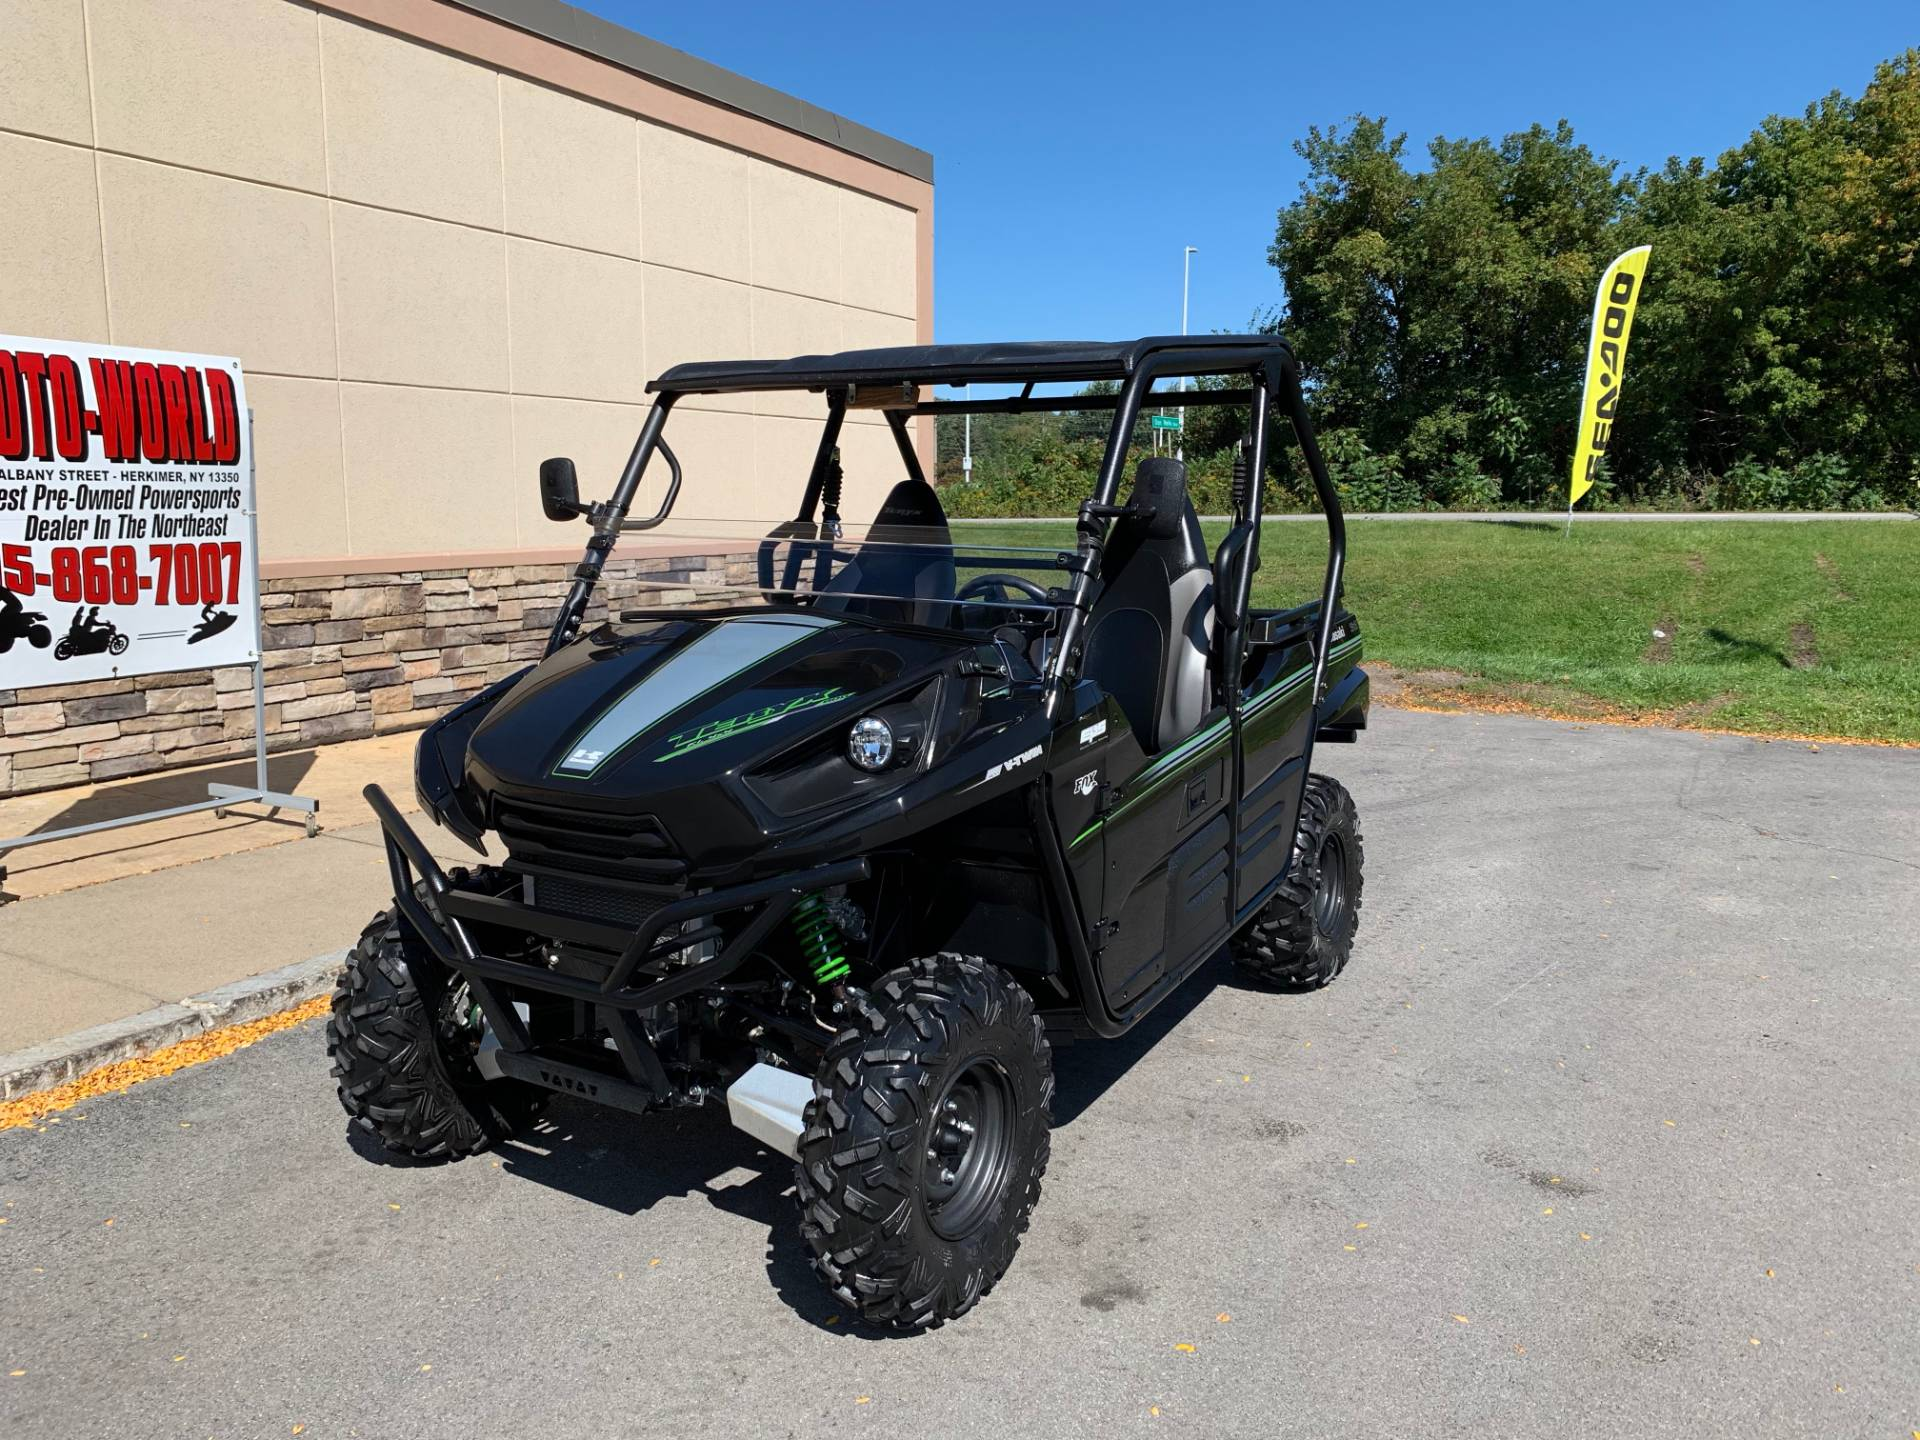 2015 Kawasaki Teryx® LE in Herkimer, New York - Photo 3